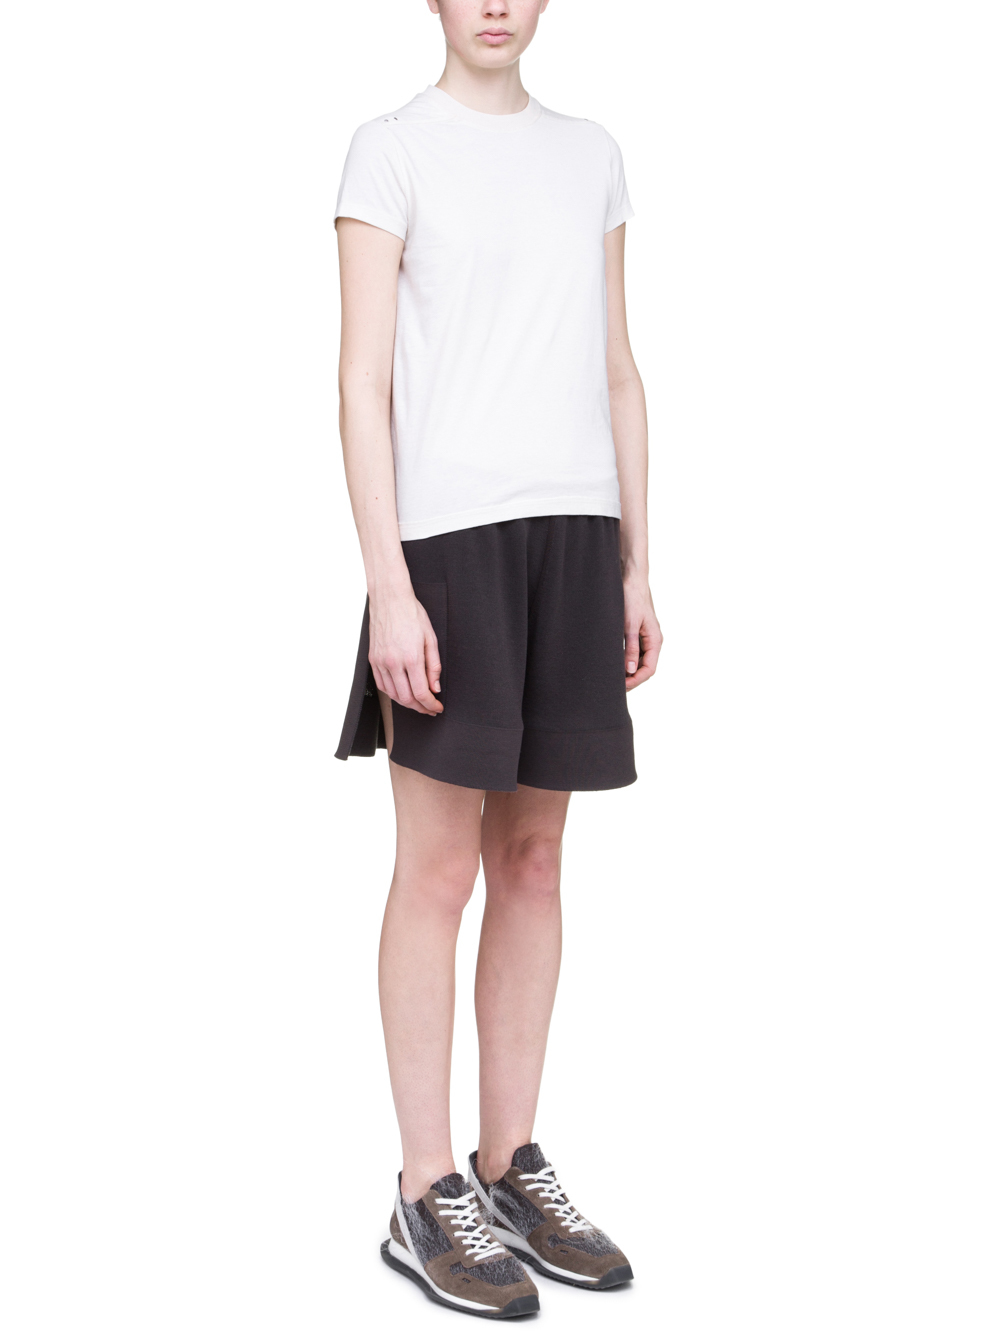 RICK OWENS OFF-THE-RUNWAY TIGHT RIVET TEE IN NATURAL MEDIUMWEIGHT COTTON JERSEY